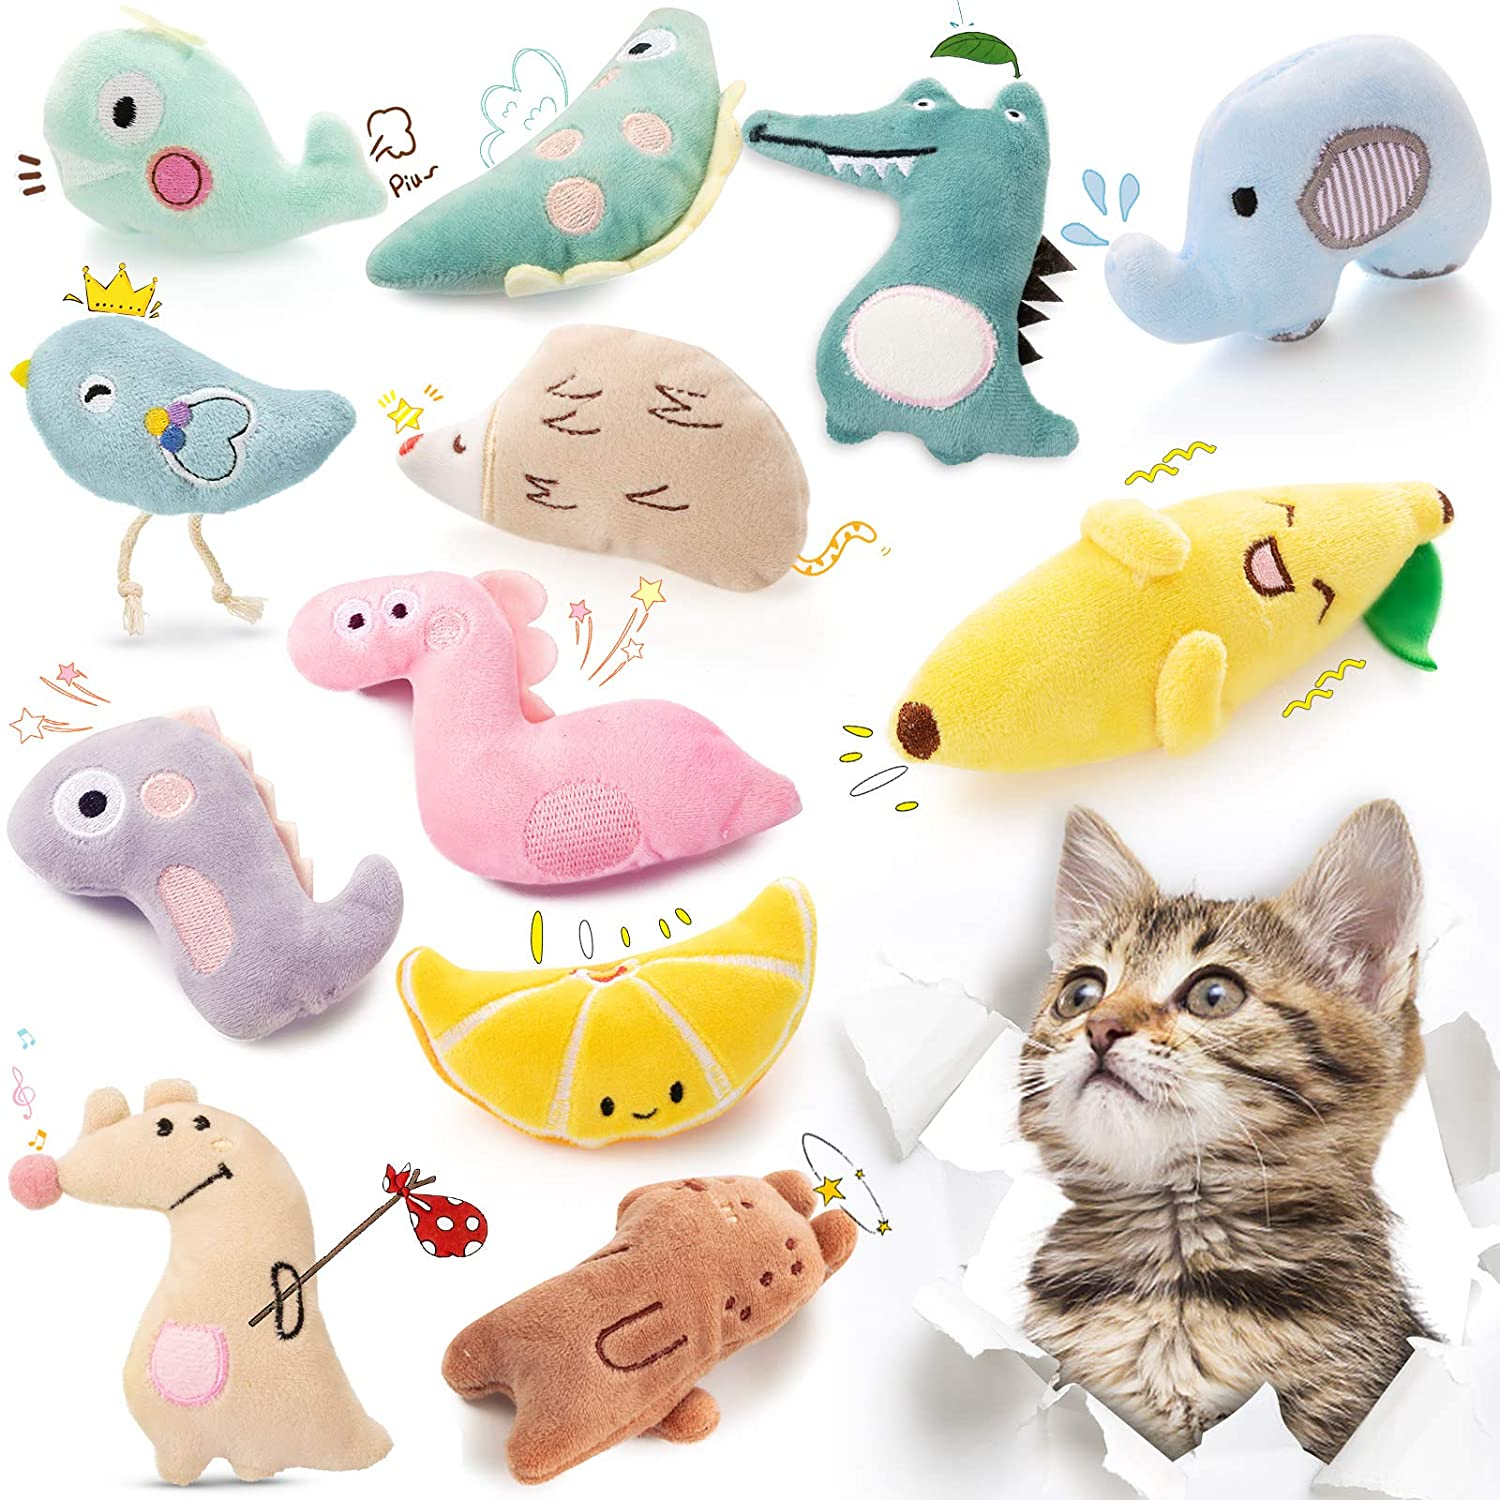 Skylety 12 Pieces Catnip Toys Cute Interactive Plush Catnip Cat Toy Cat Catnip Toys Set for Cat Kitten Indoor and Outdoor Entertaining Birthday Halloween Christmas Holiday Presents for Kitten